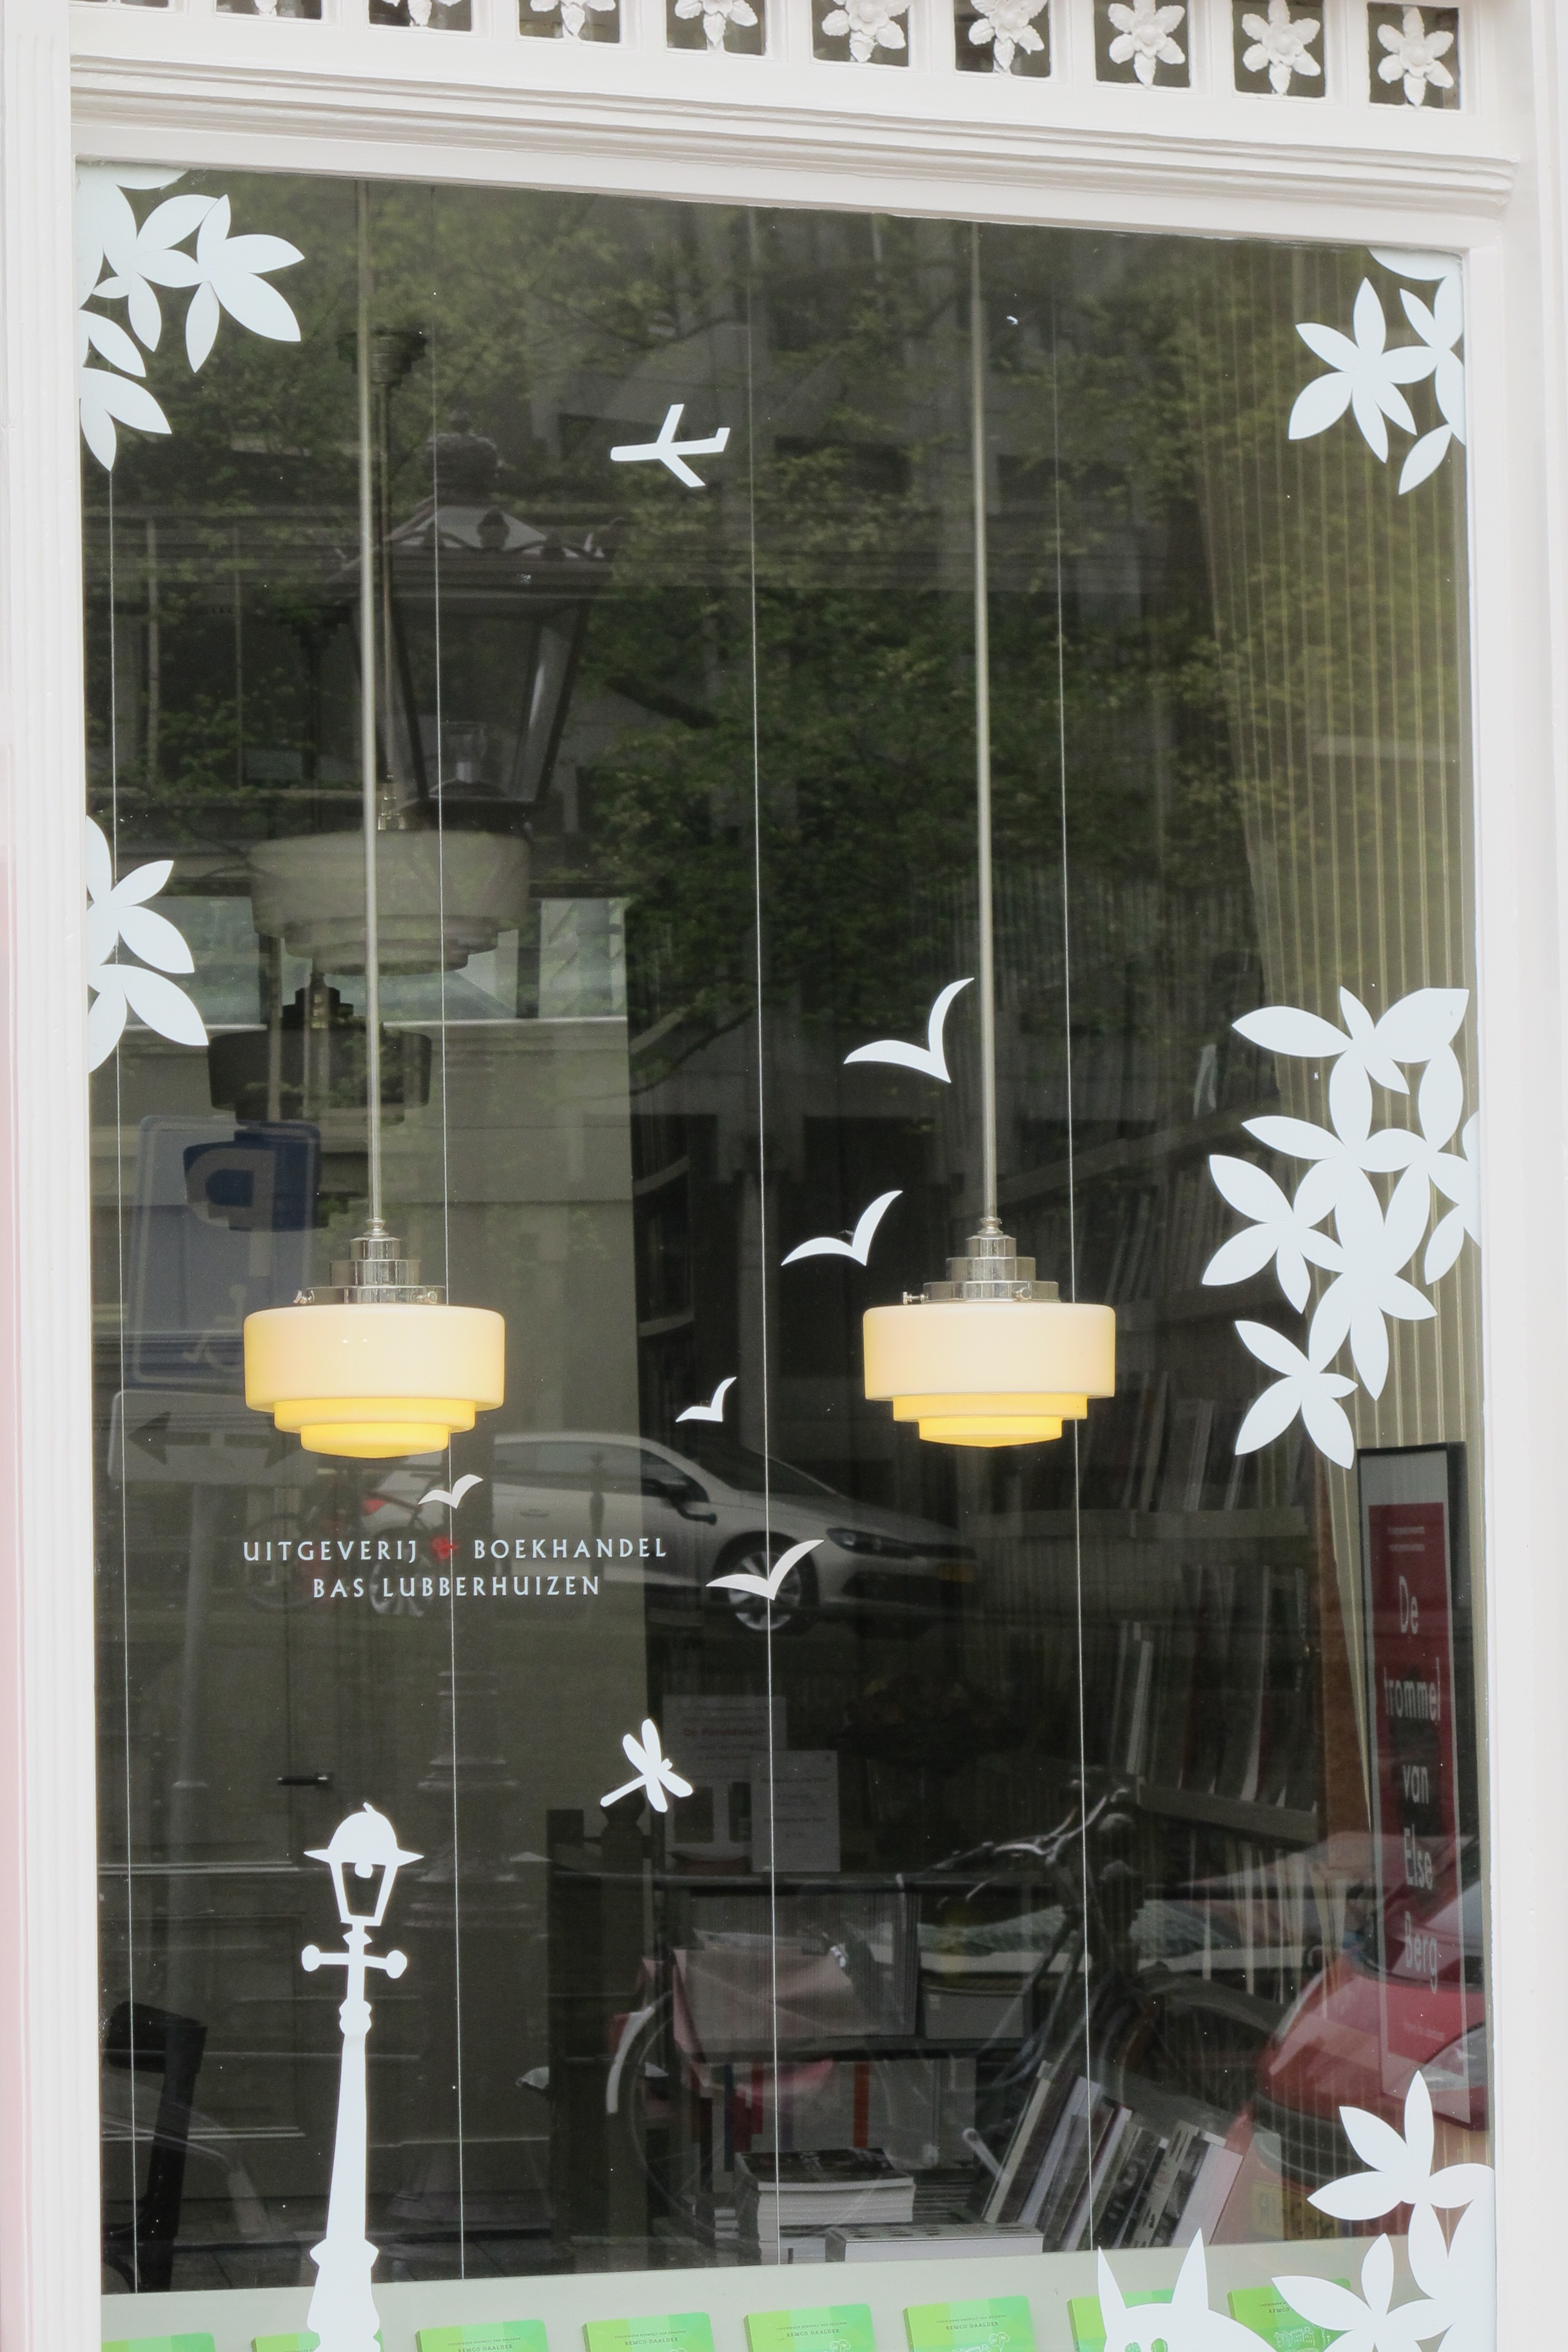 Window decorations for publishing house Bas Lubberhuizen, in Amsterdam, the Netherlands.